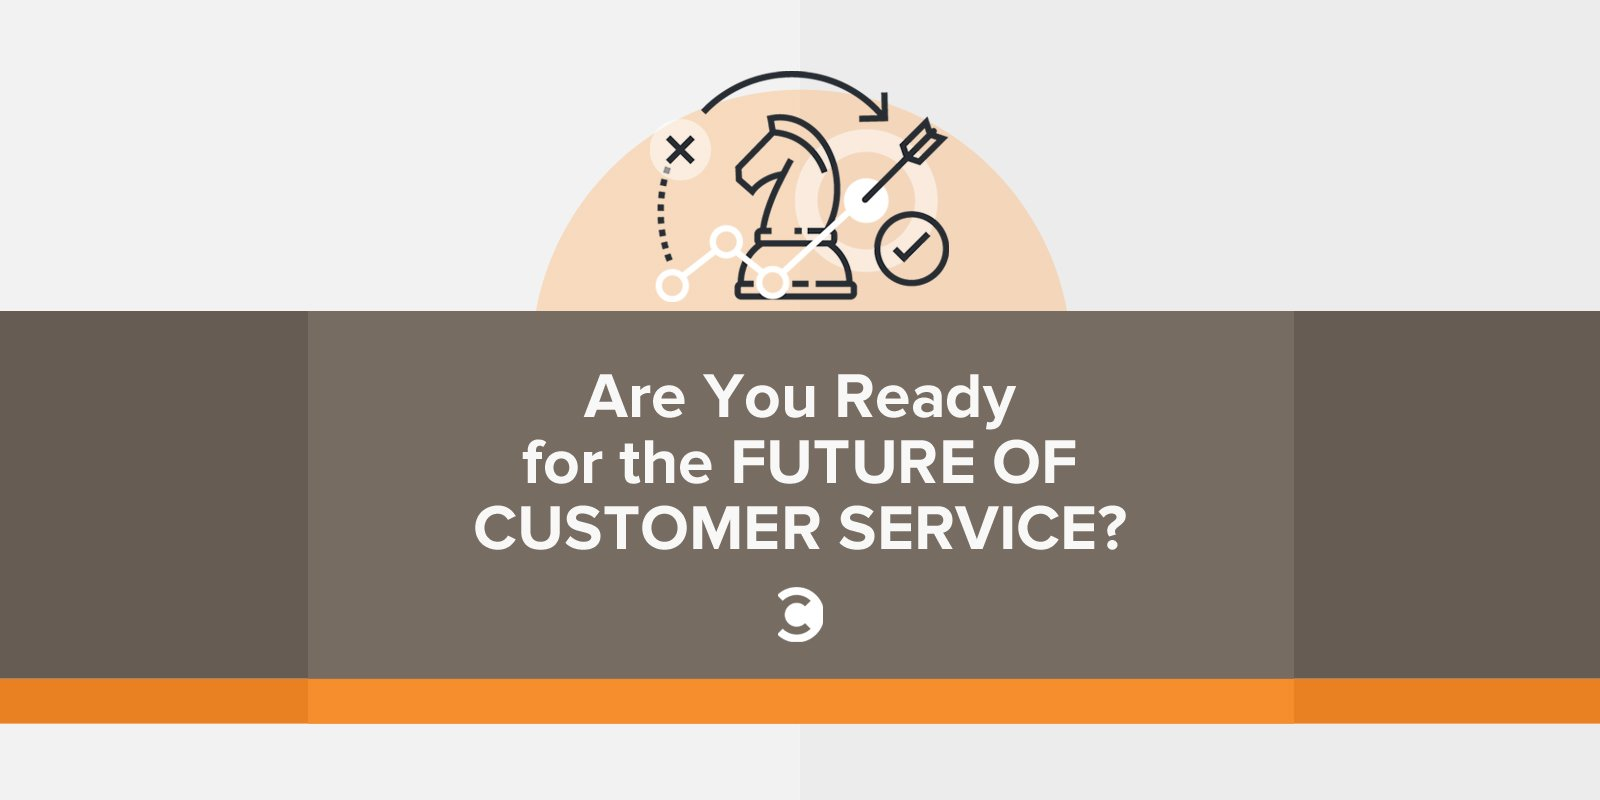 Are You Ready for the Future of Customer Service